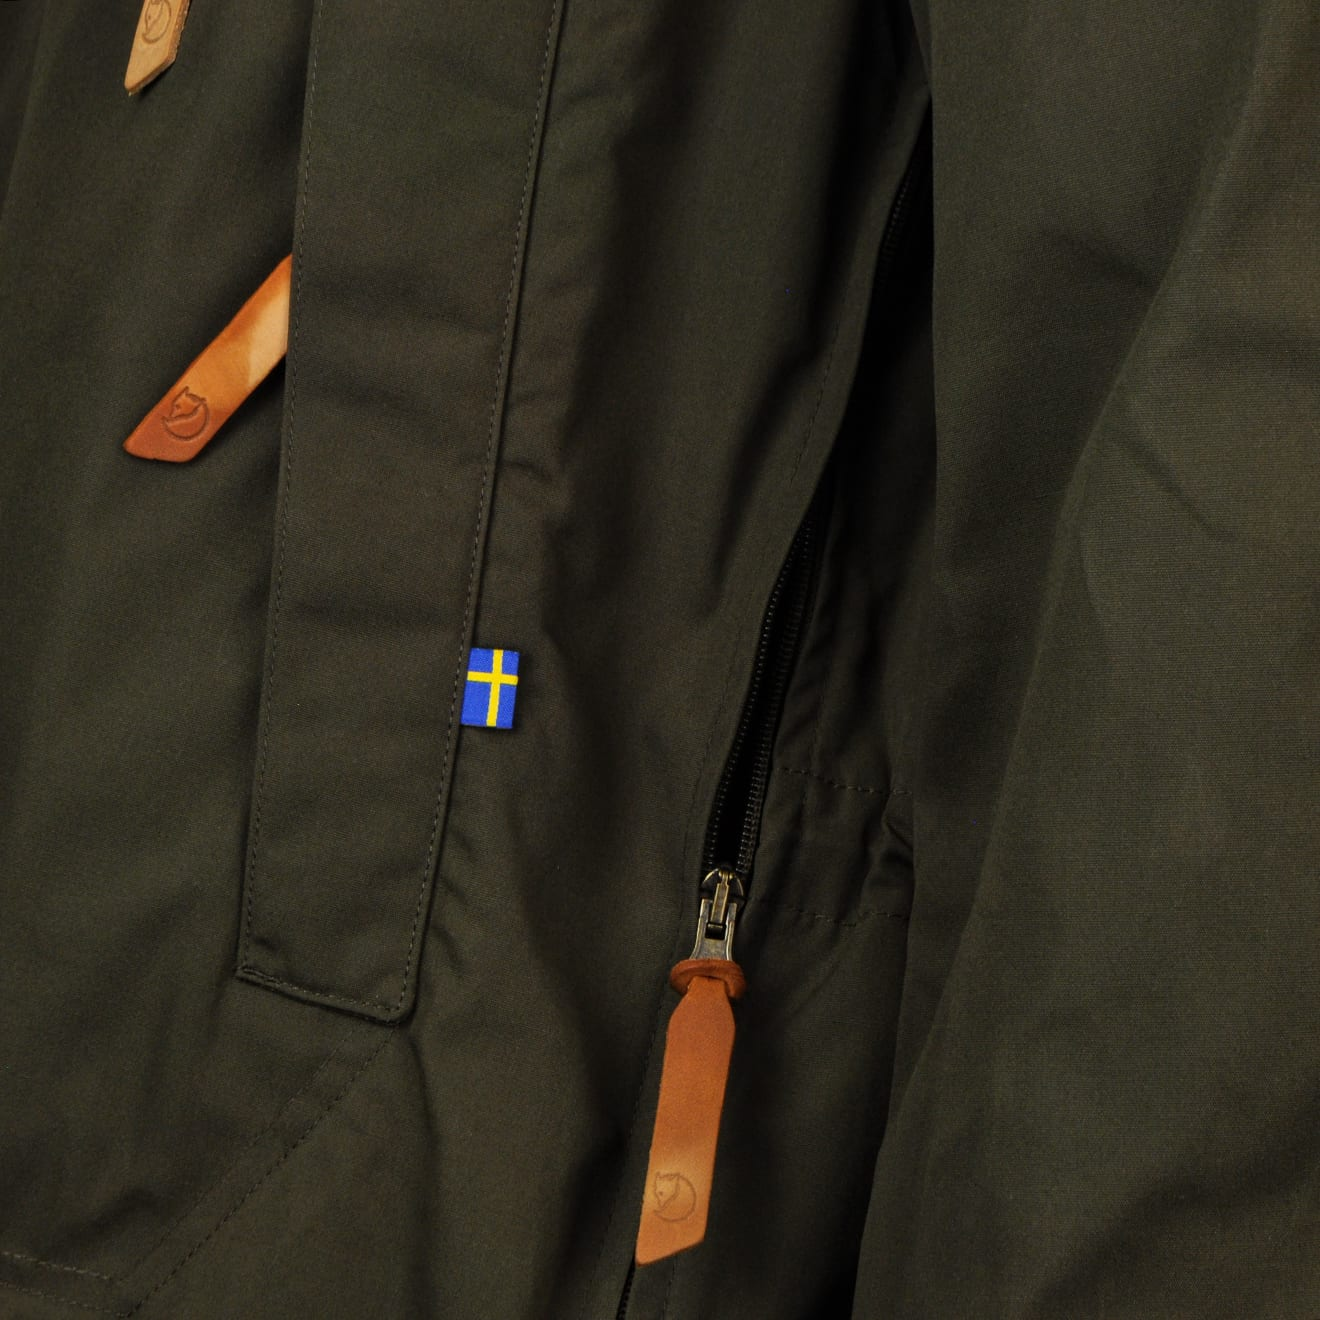 fjallraven anorak no 8 review